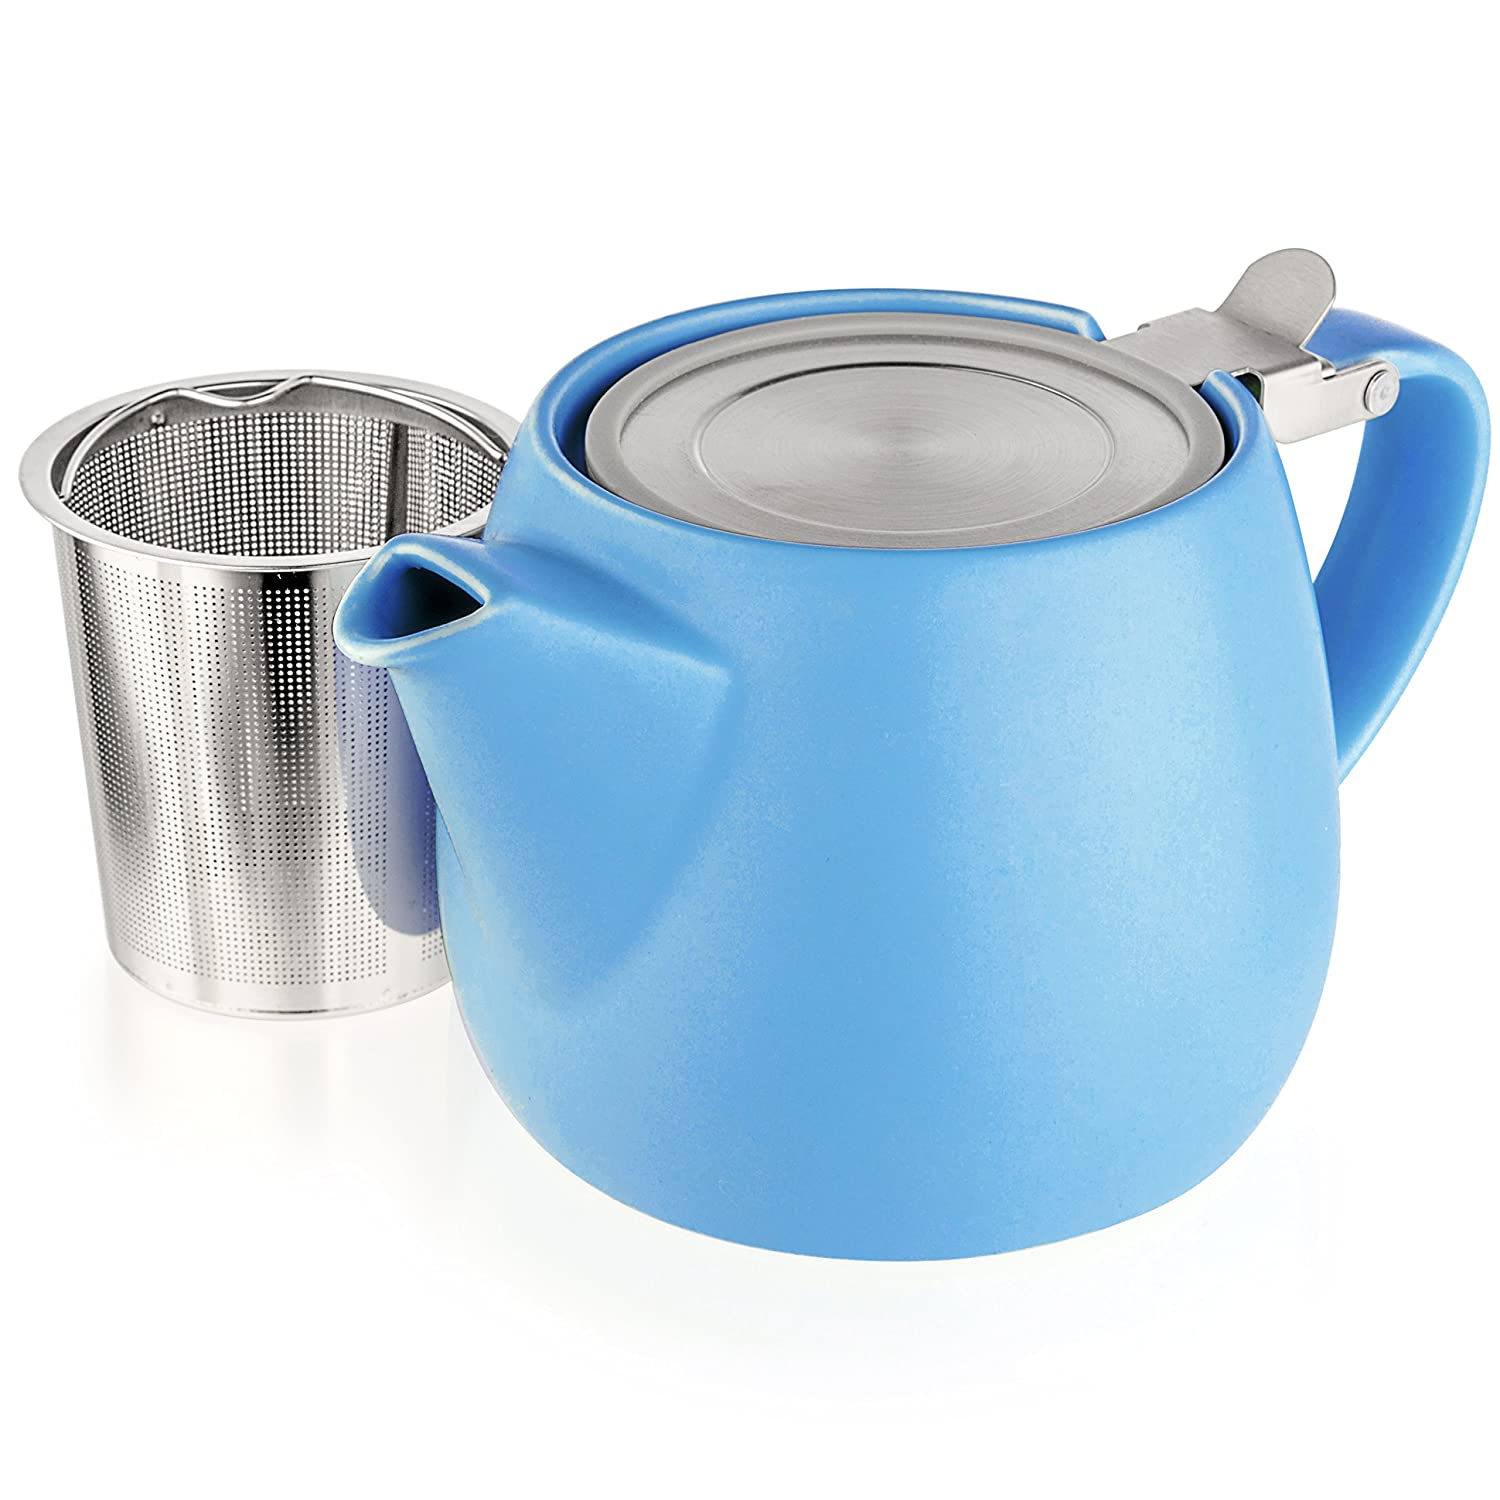 Tealyra - Pluto Porcelain Small Teapot Blue - 18.2-ounce (1-2 cups) - Matte Finish - Stainless Steel Lid and Extra-Fine Infuser To Brew Loose Leaf Tea - Ceramic Tea Brewer - 540ml